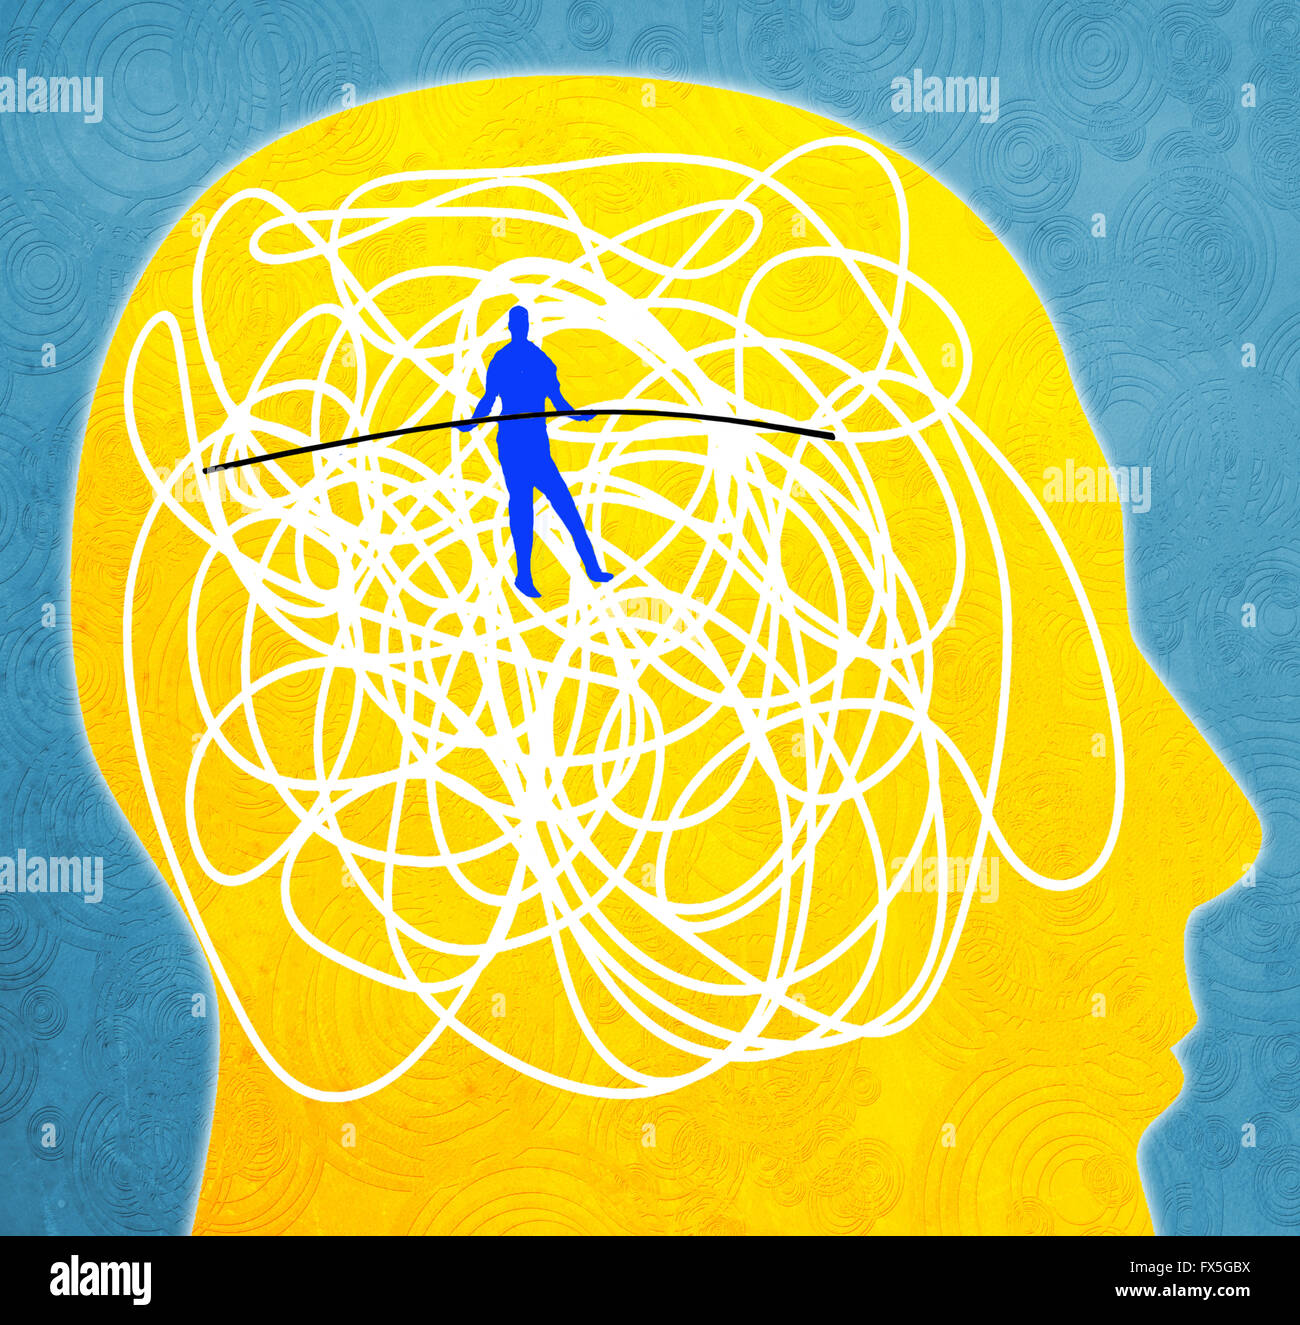 mental disorder concept digital illustration with tightrope walker - Stock Image